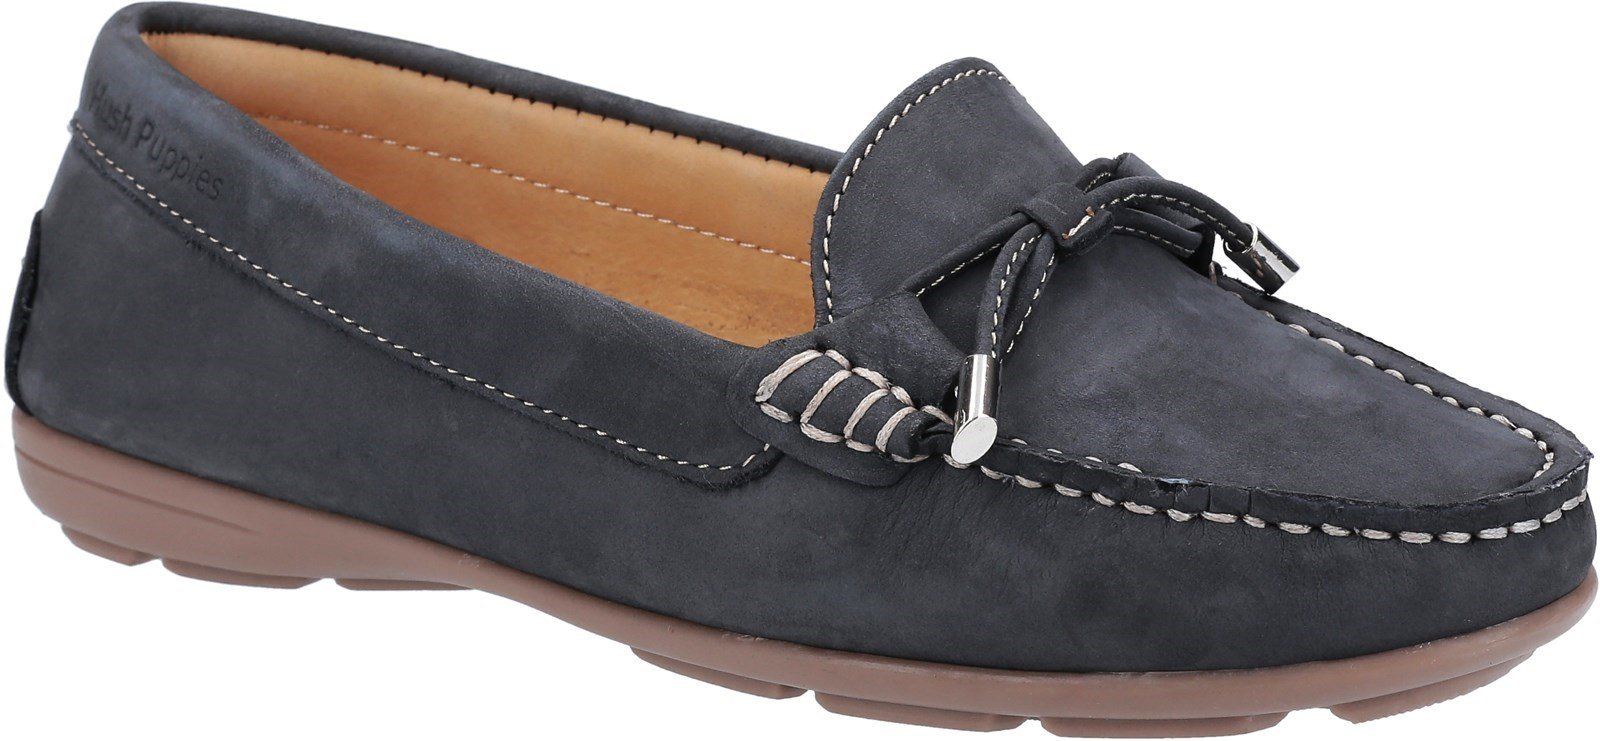 Hush Puppies Women's Maggie Slip On Loafer Shoe Various Colours 28405 - Navy 3